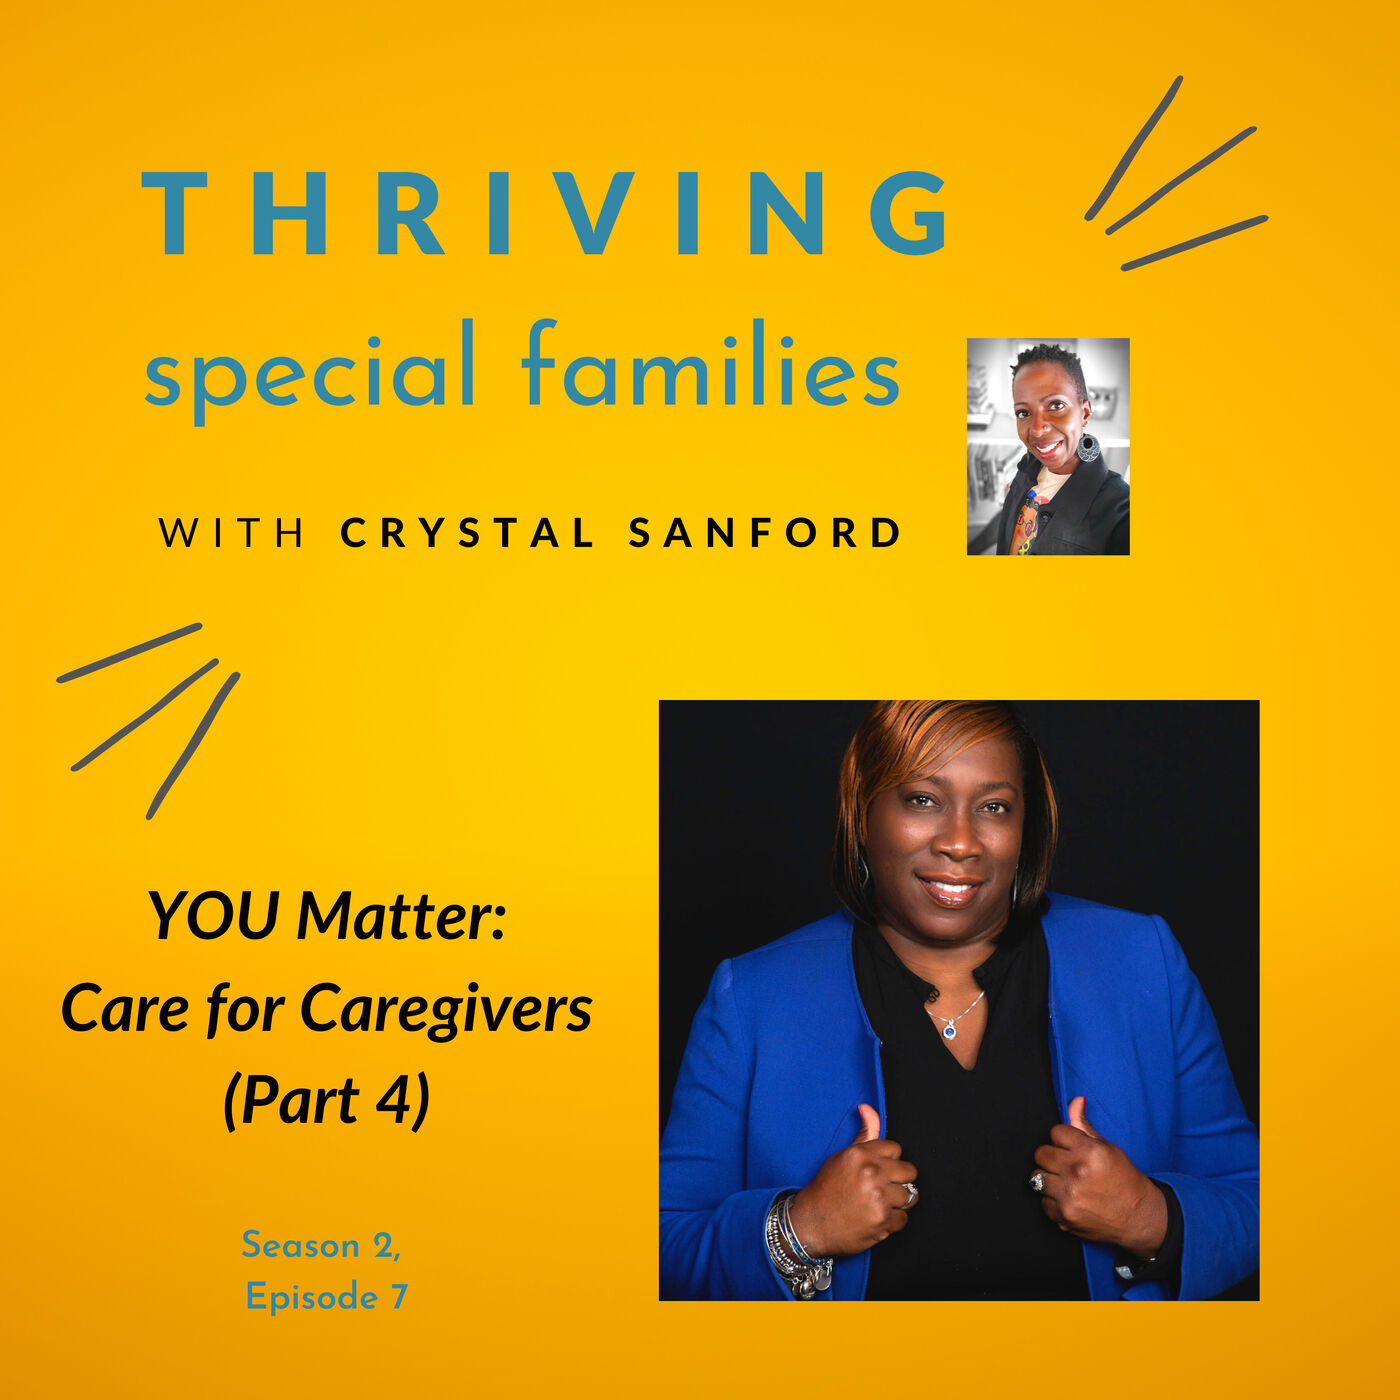 YOU Matter: Care For Caregivers (Part 4)